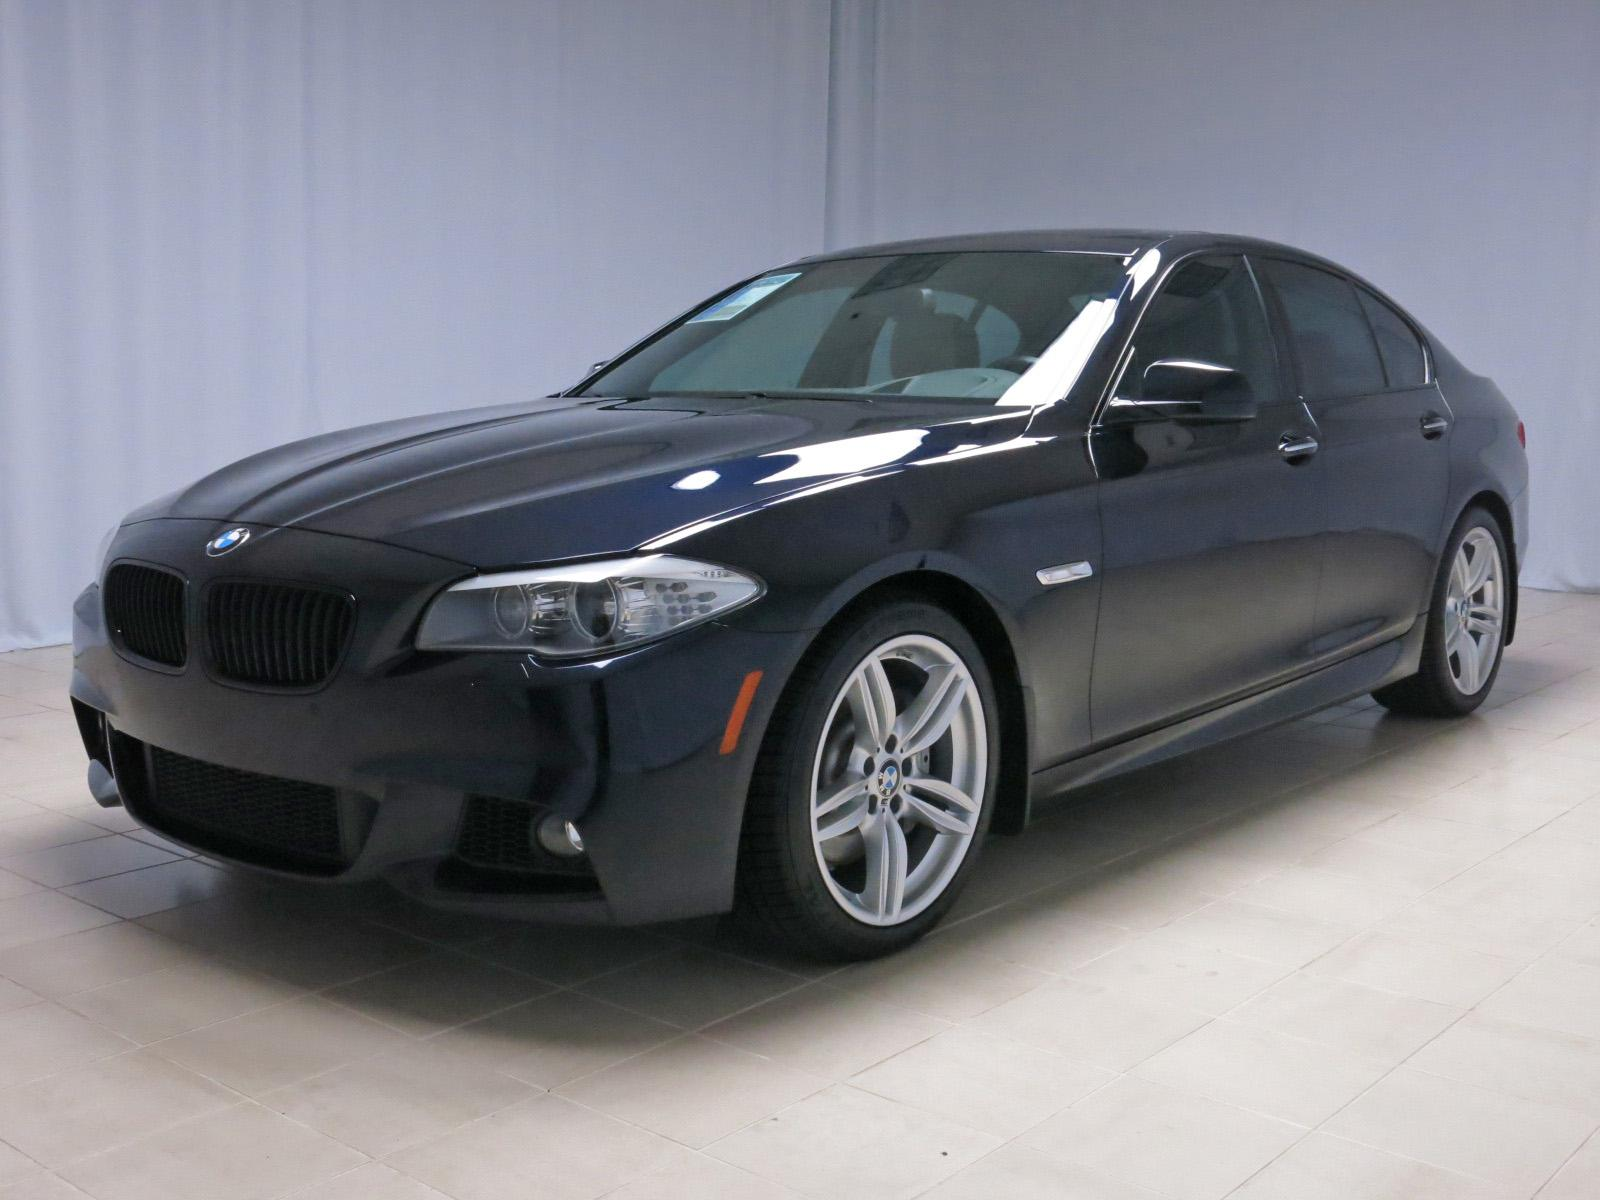 BMW 5 series 535i 2013 photo - 4